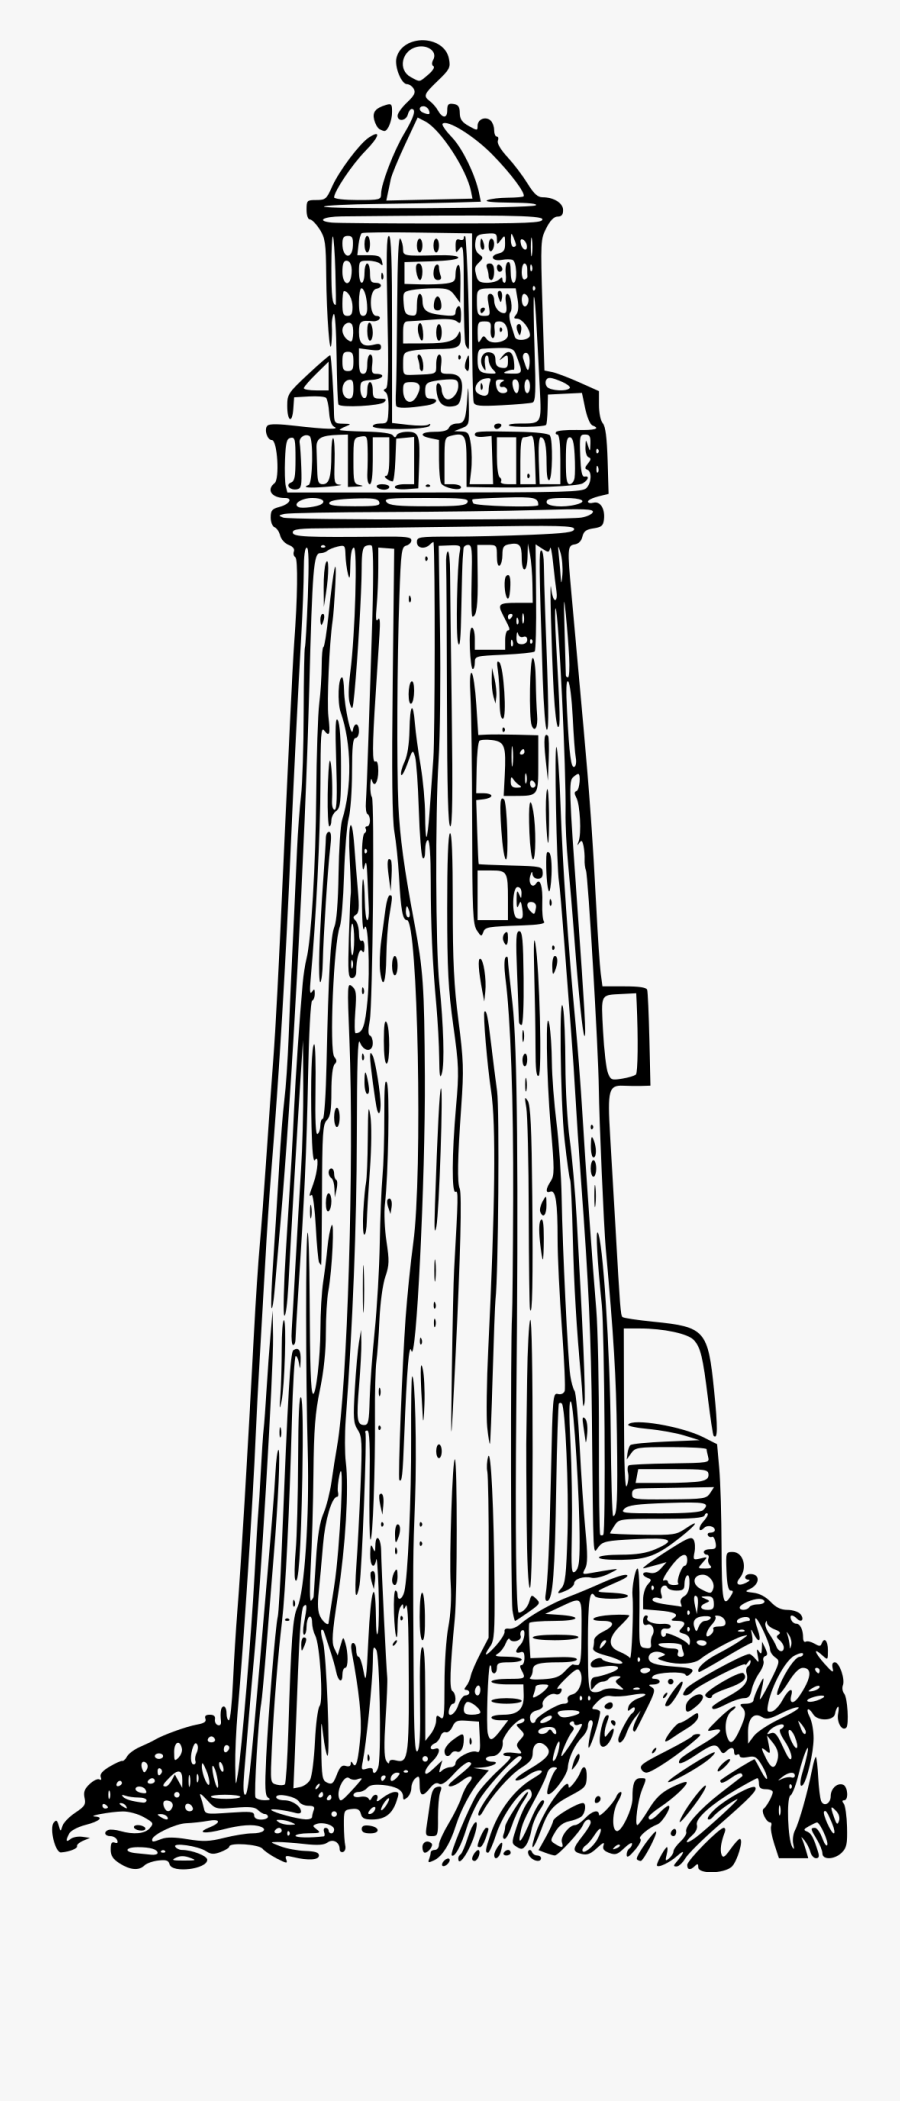 Clipart - Lighthouse Drawing Png, Transparent Clipart